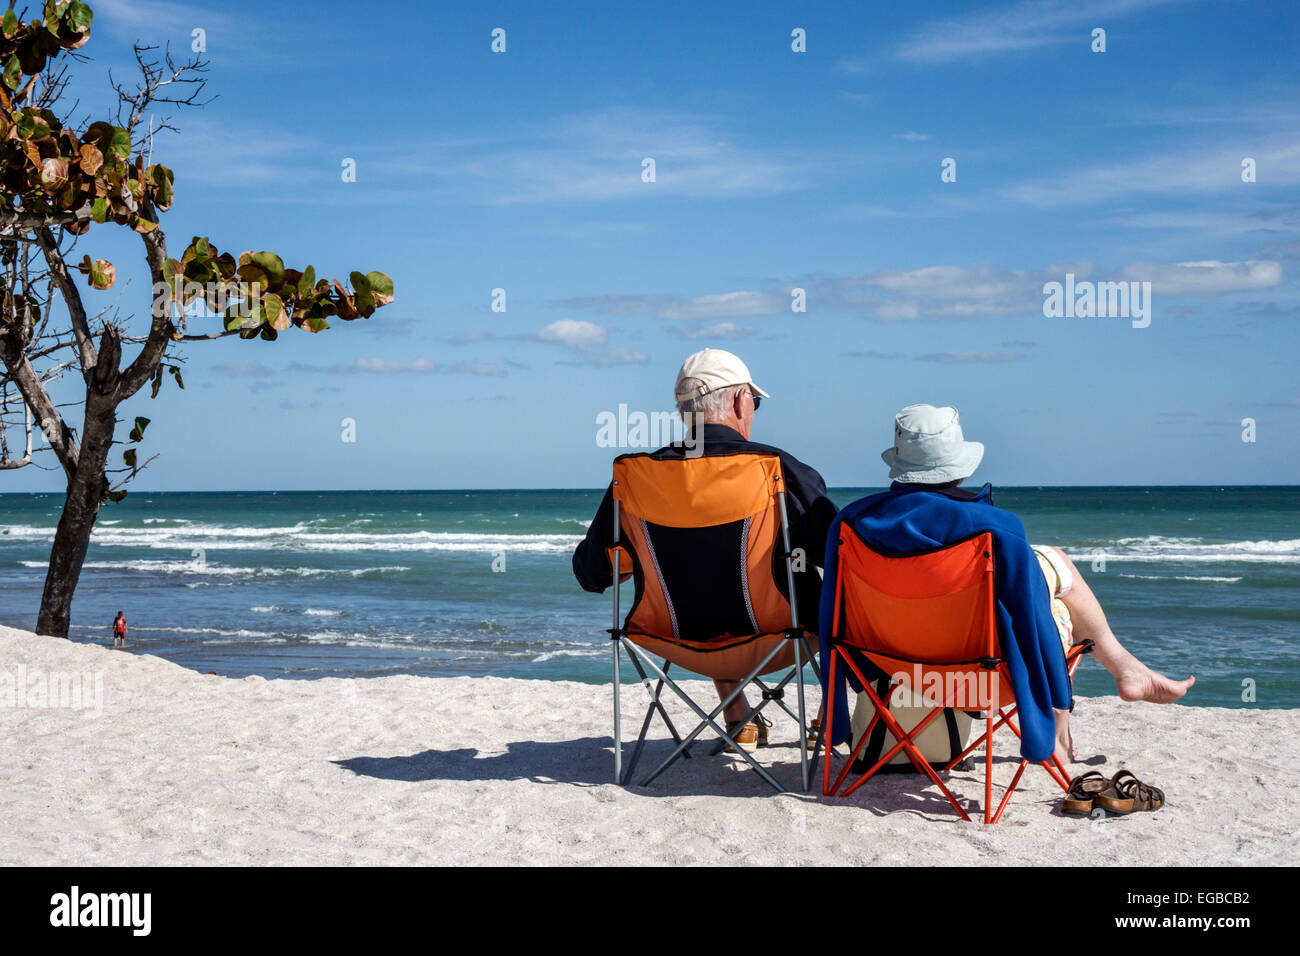 Stuart Florida Hutchinson Island Bathtub Reef Beach senior man woman ...